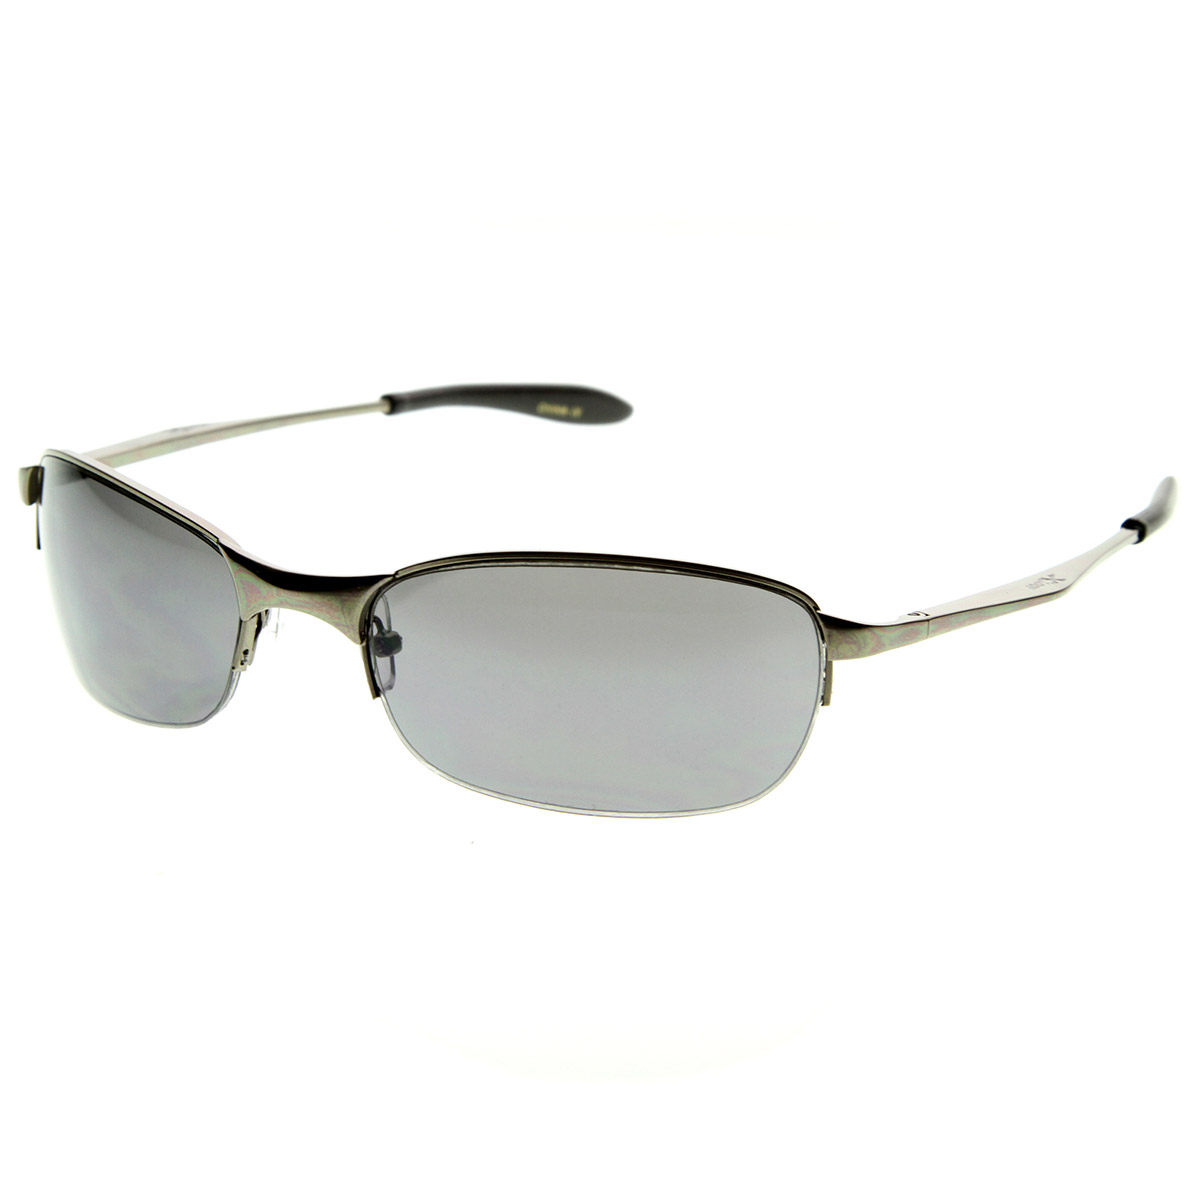 Ray Ban Silver Frame Glasses : Ray Ban Sunglasses Silver Plated Titanium Frames Our ...